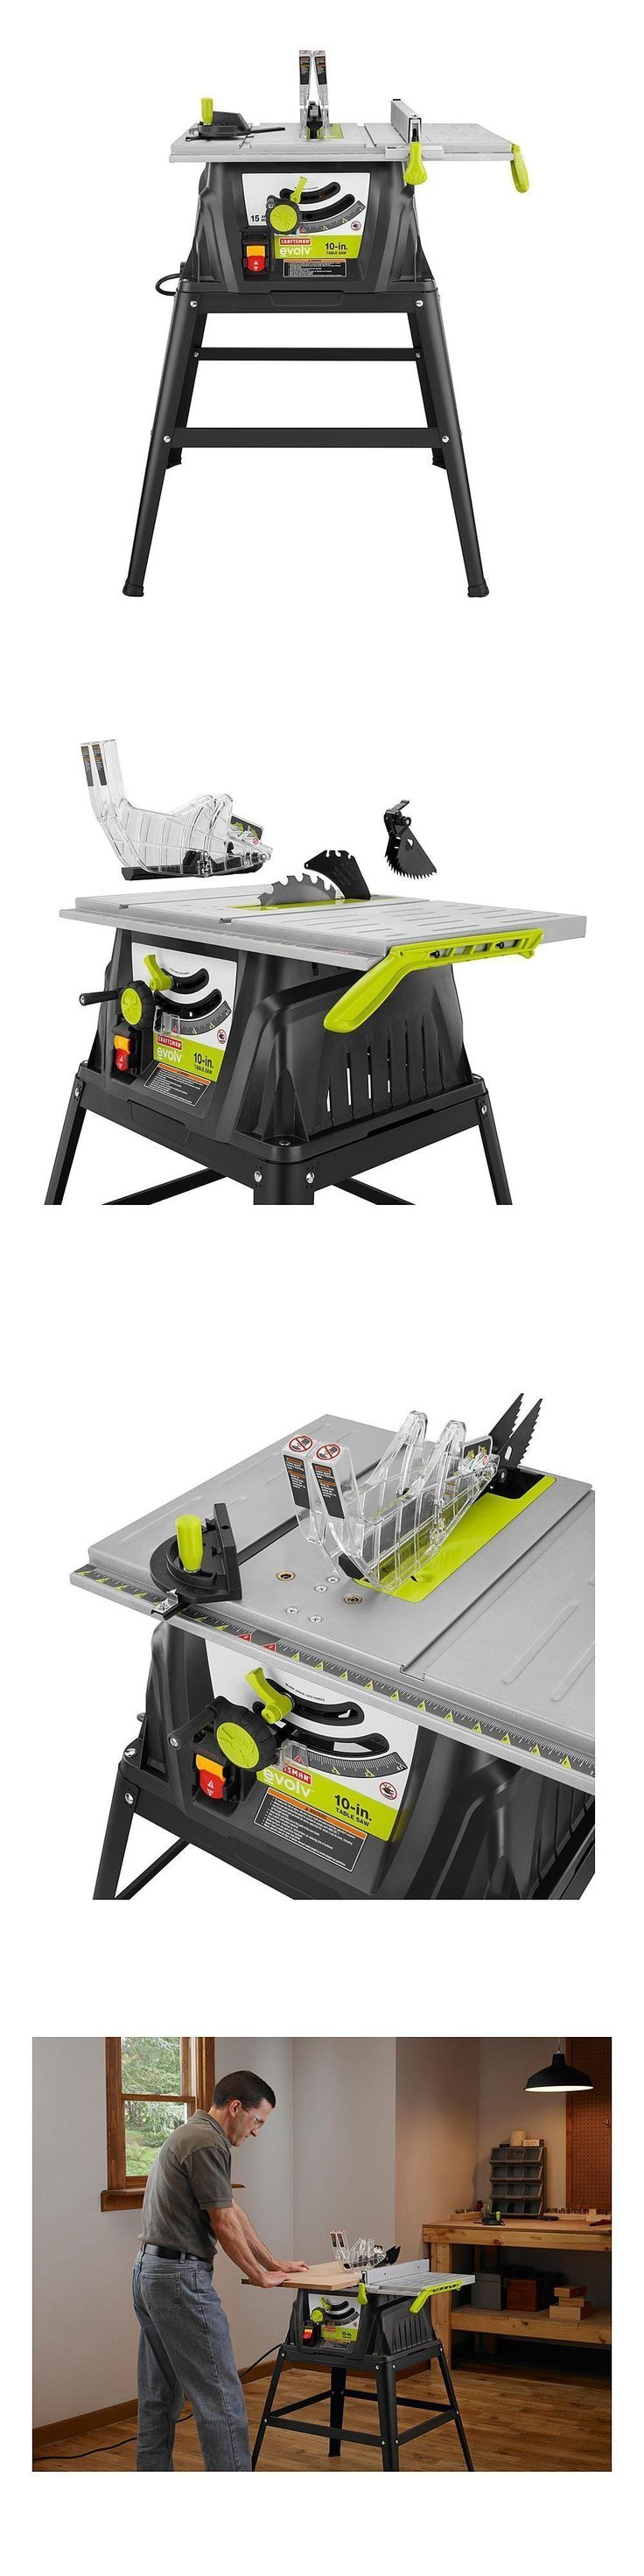 Table Saws 122835: Craftsman Evolv 15 Amp 10 In. Table Saw 28461 - Brand New -> BUY IT NOW ONLY: $132.99 on eBay!